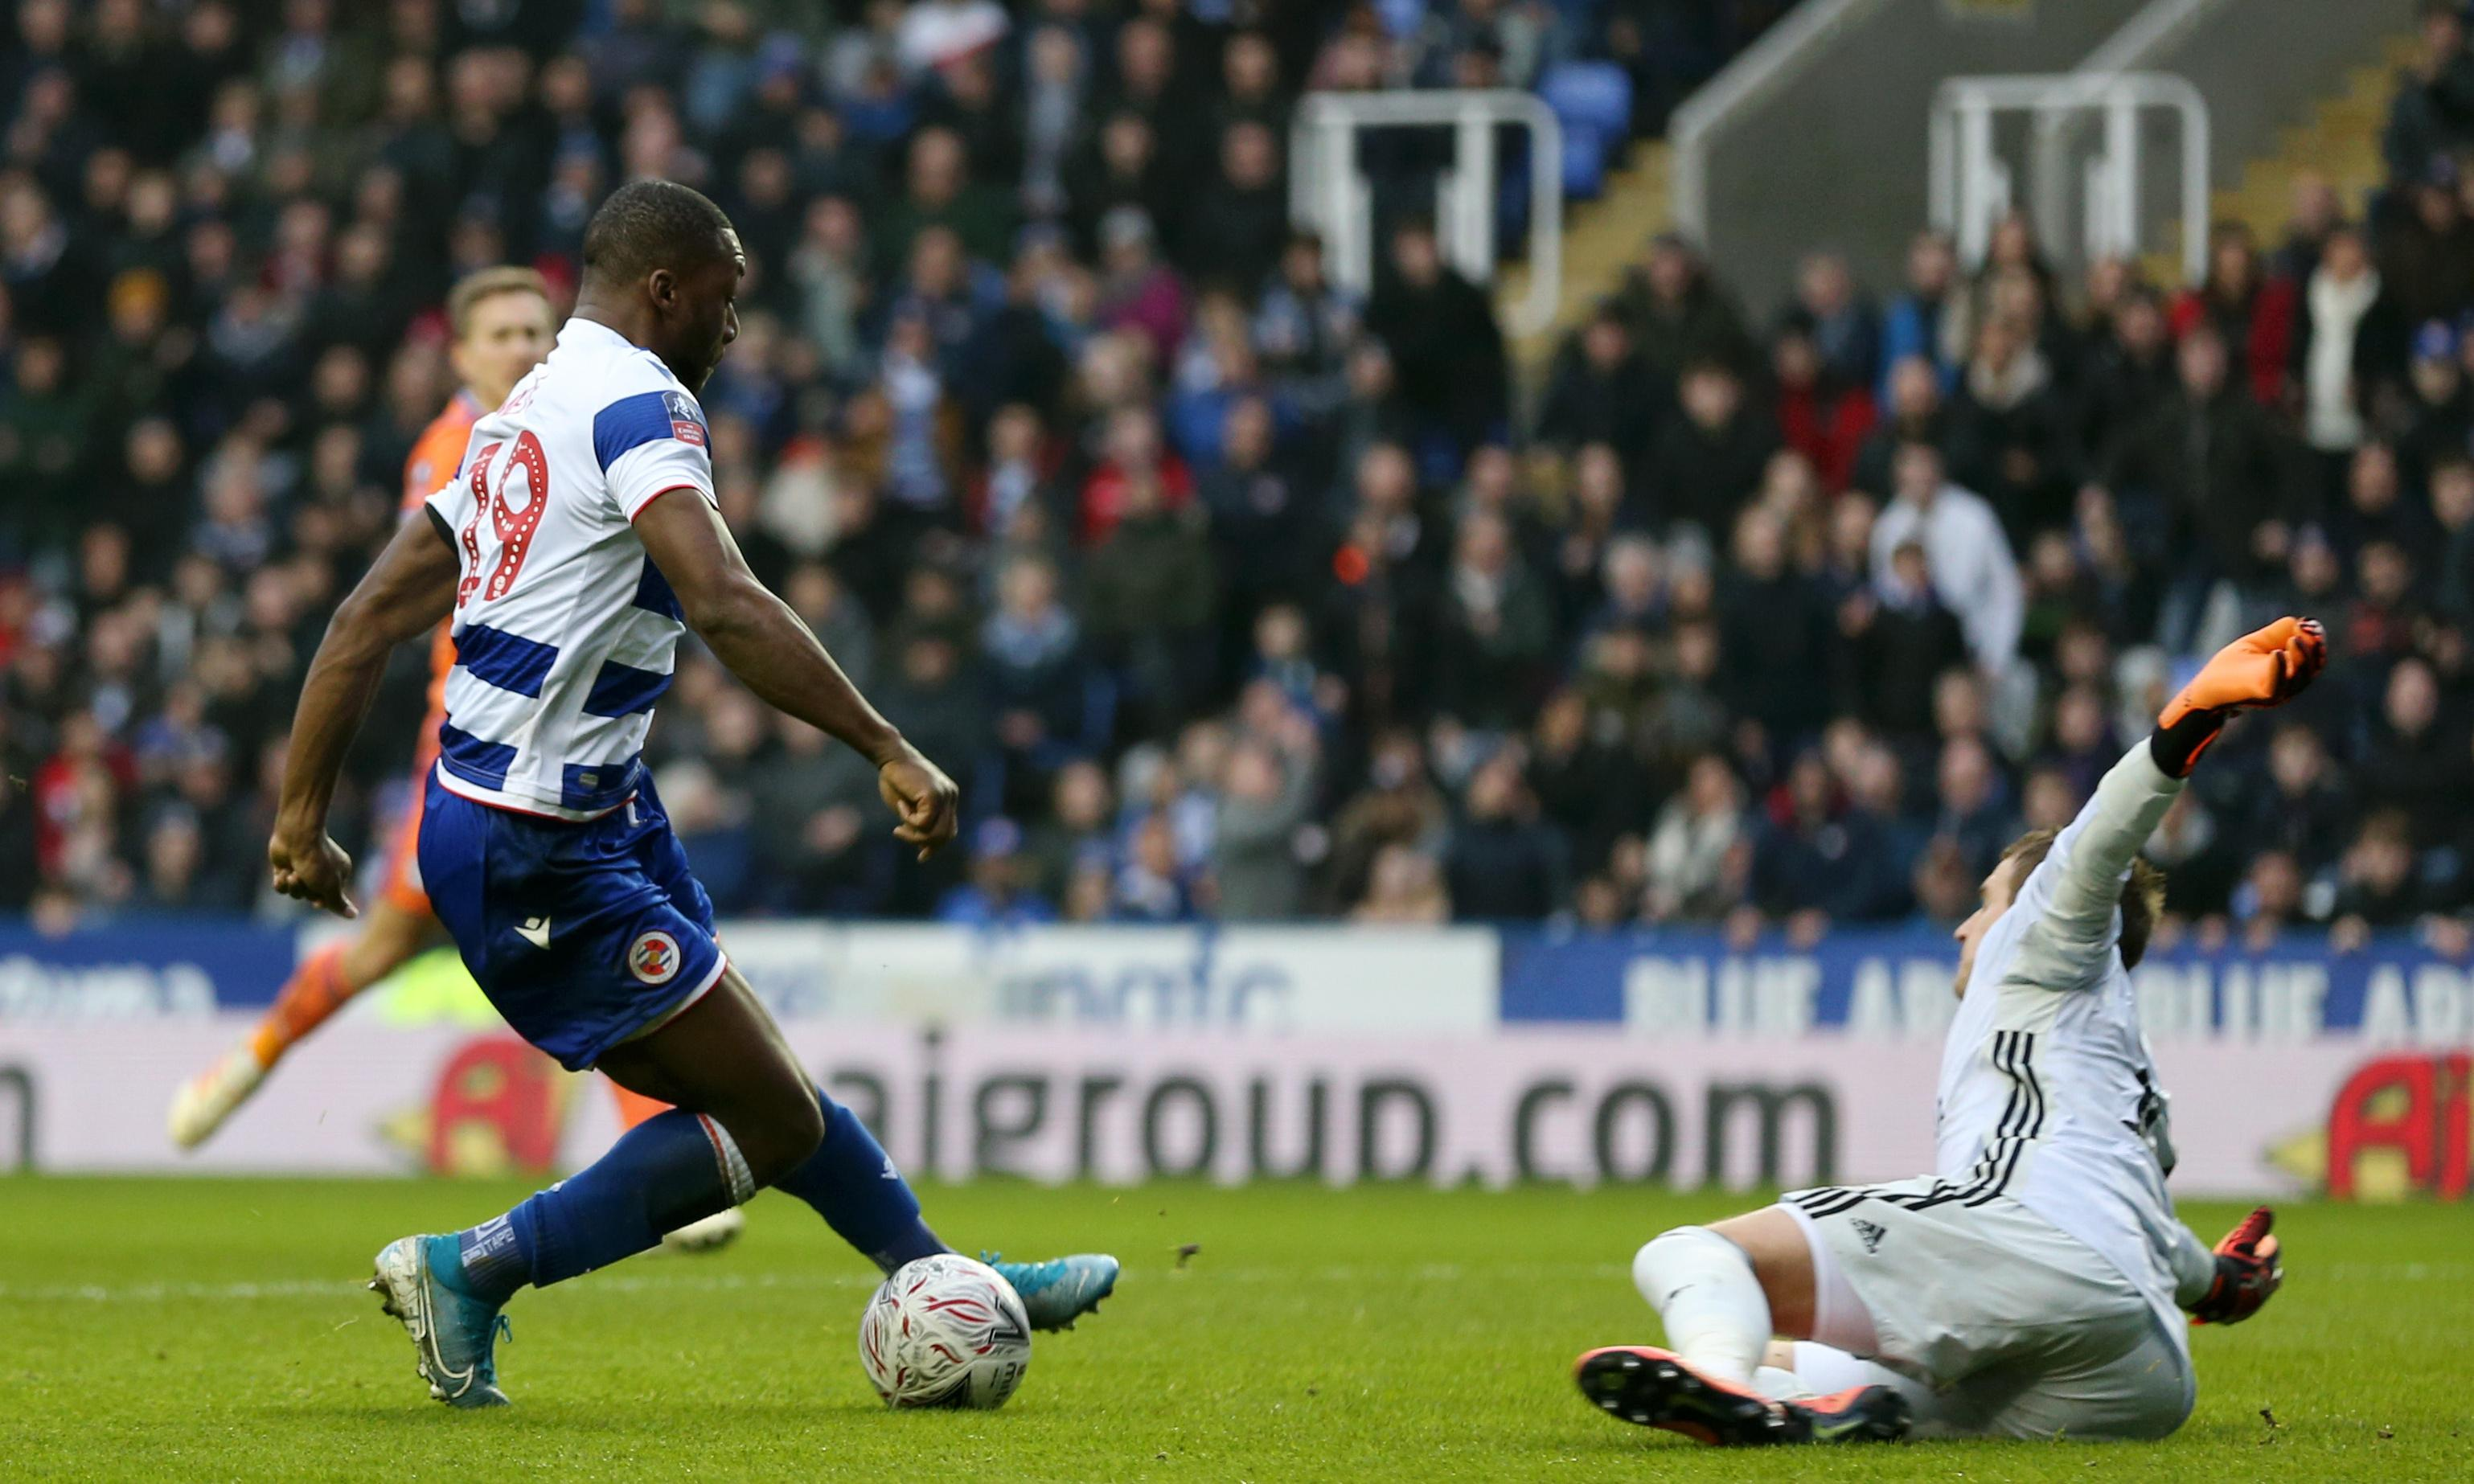 FA Cup roundup: Alleged racist chanting taints Reading draw with Cardiff